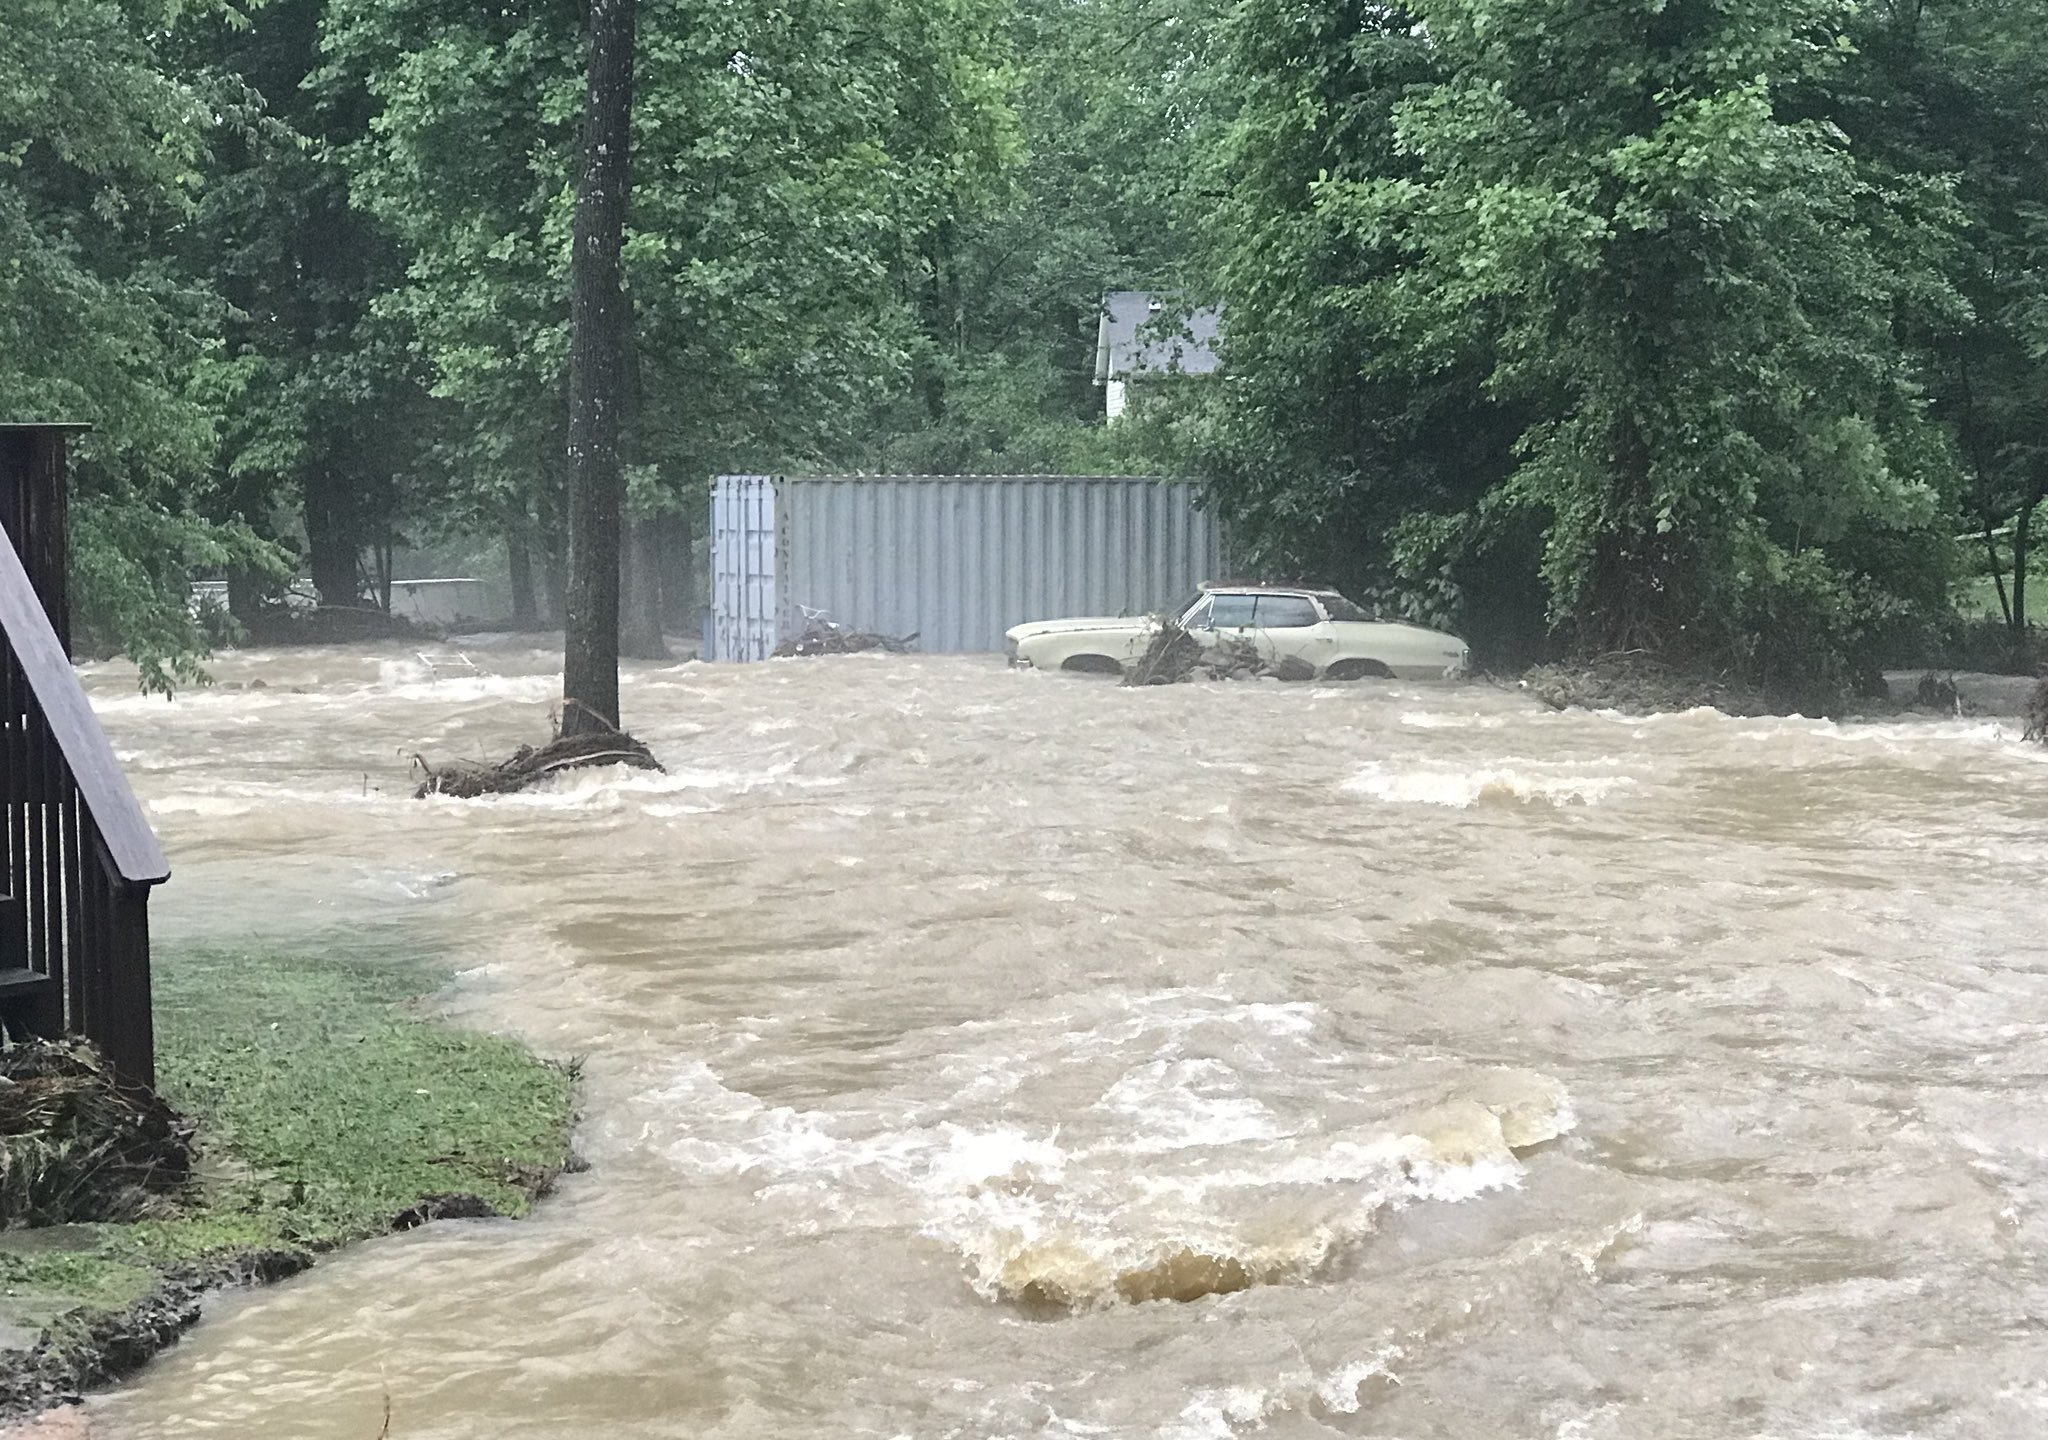 Floodwaters in McDowell County, North Carolina, have reached levels not seen since 2004 with Hurricane Frances/Ivan. (Credit: Nathan West/Twitter via CNN)